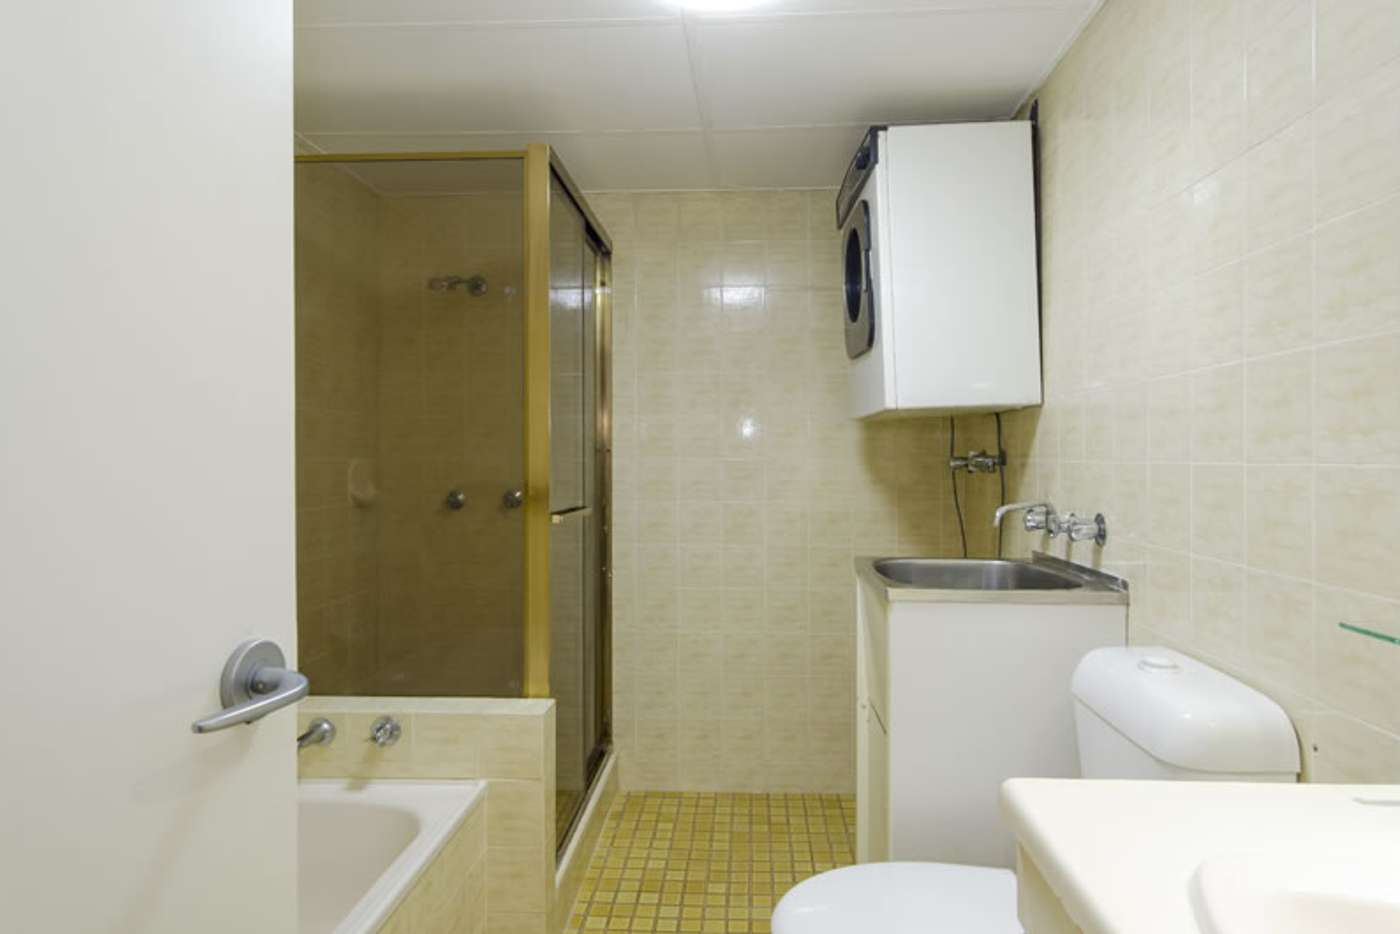 Fifth view of Homely apartment listing, 6C/6 Macleay Street, Potts Point NSW 2011